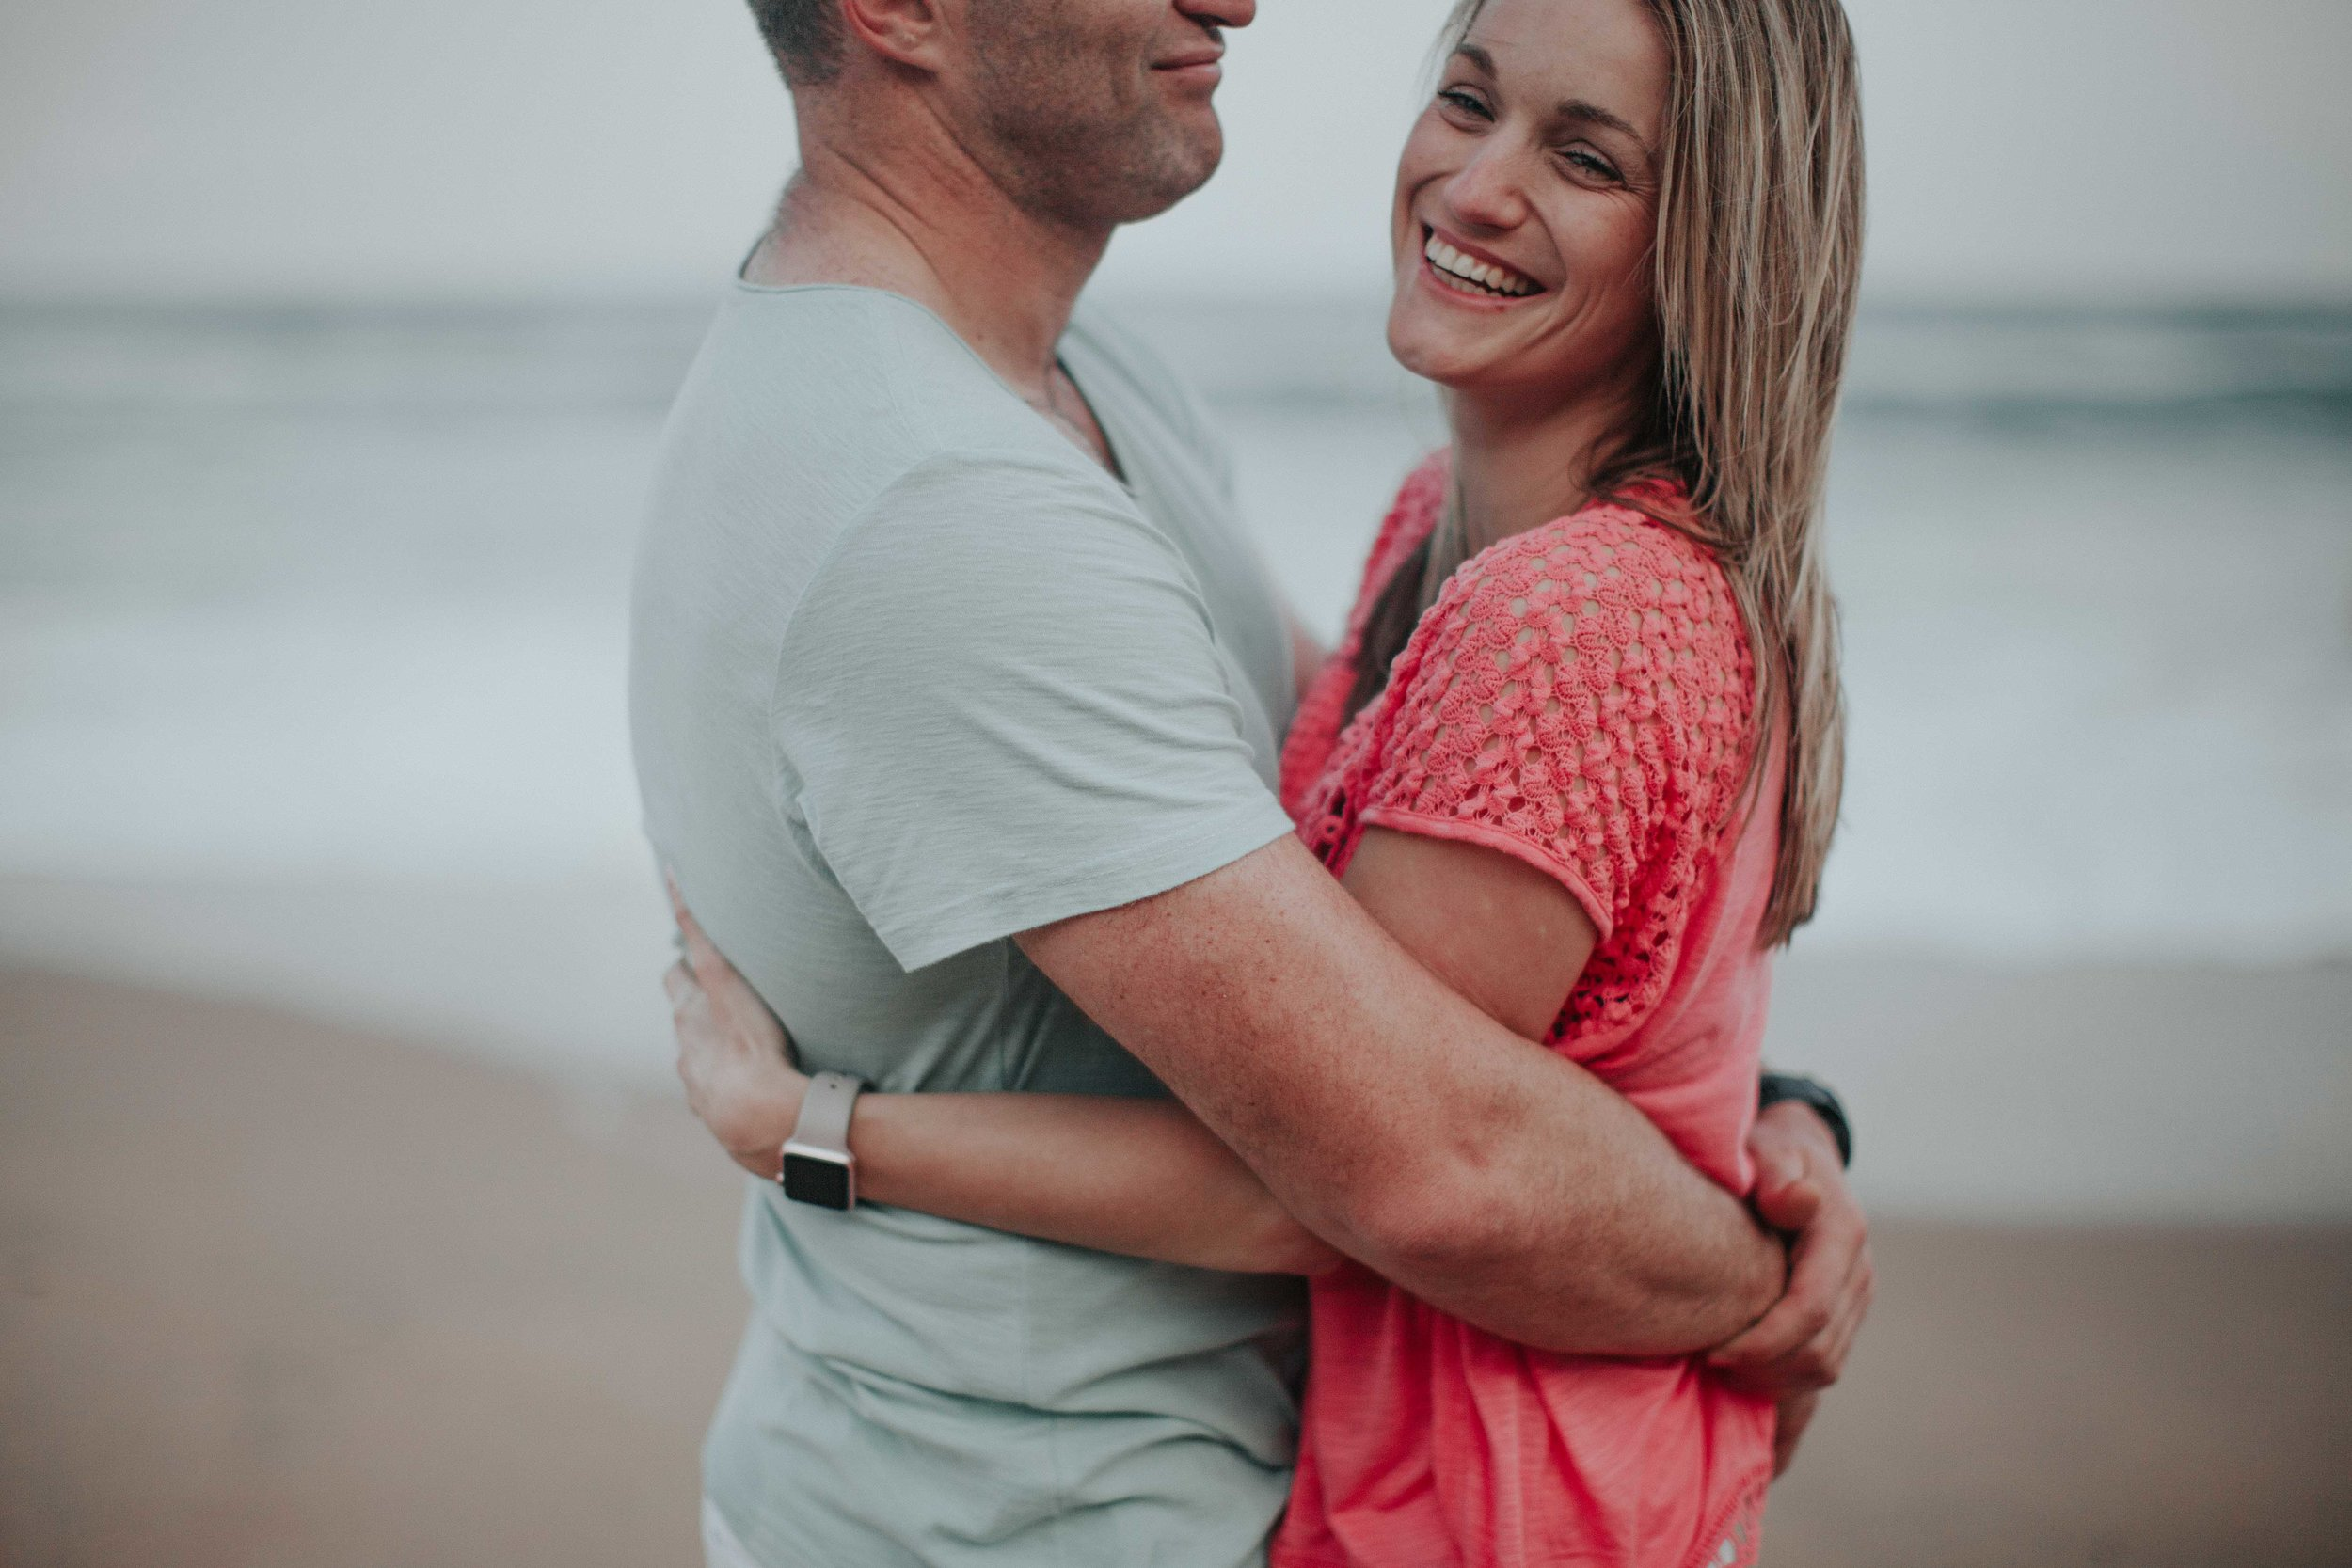 Kristi Smith Photography - Engagement Shoot - Steve & Tarryn 18.jpg